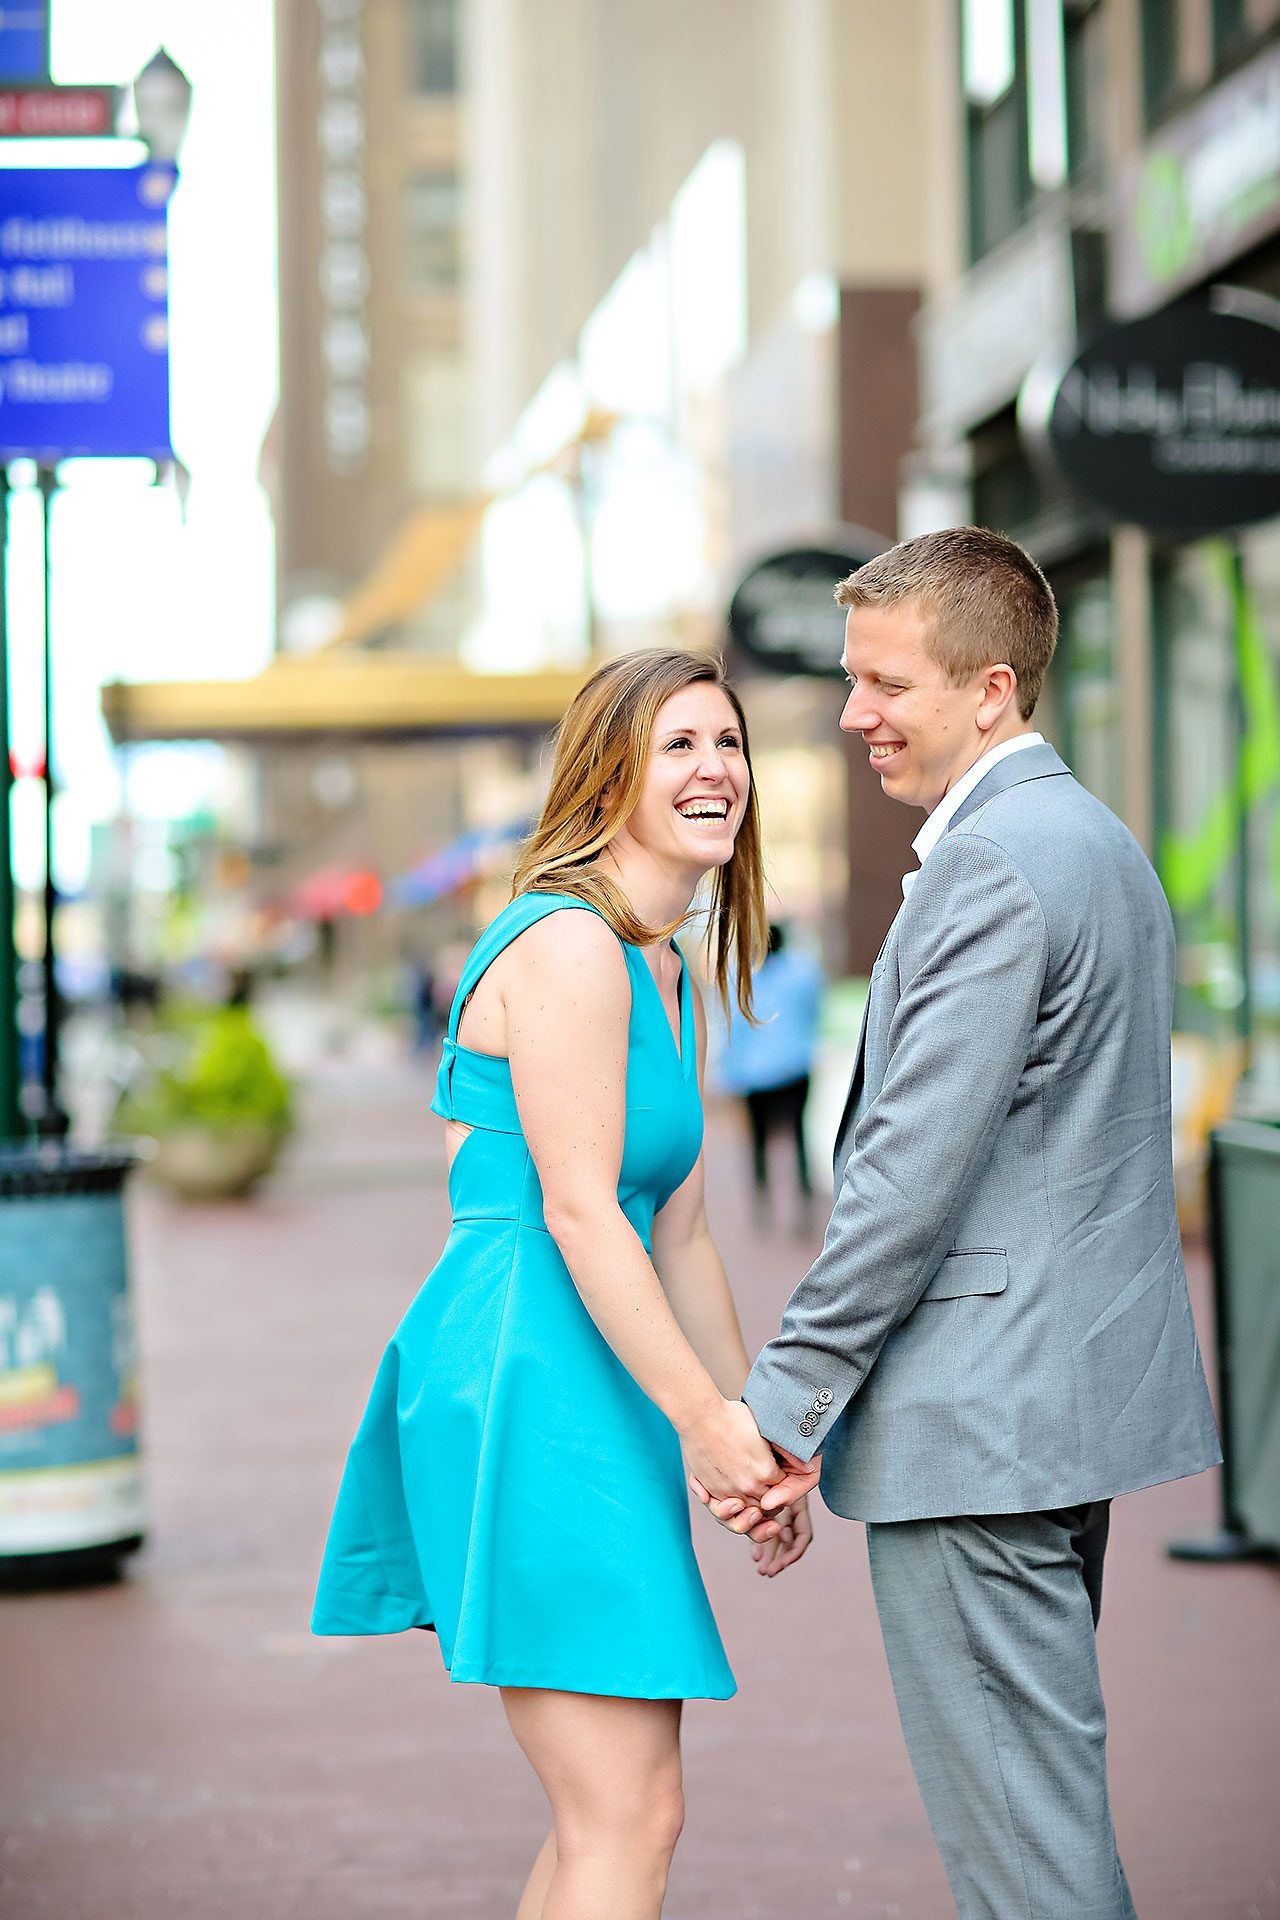 Chelsea Jeff Downtown Indy Engagement Session 003